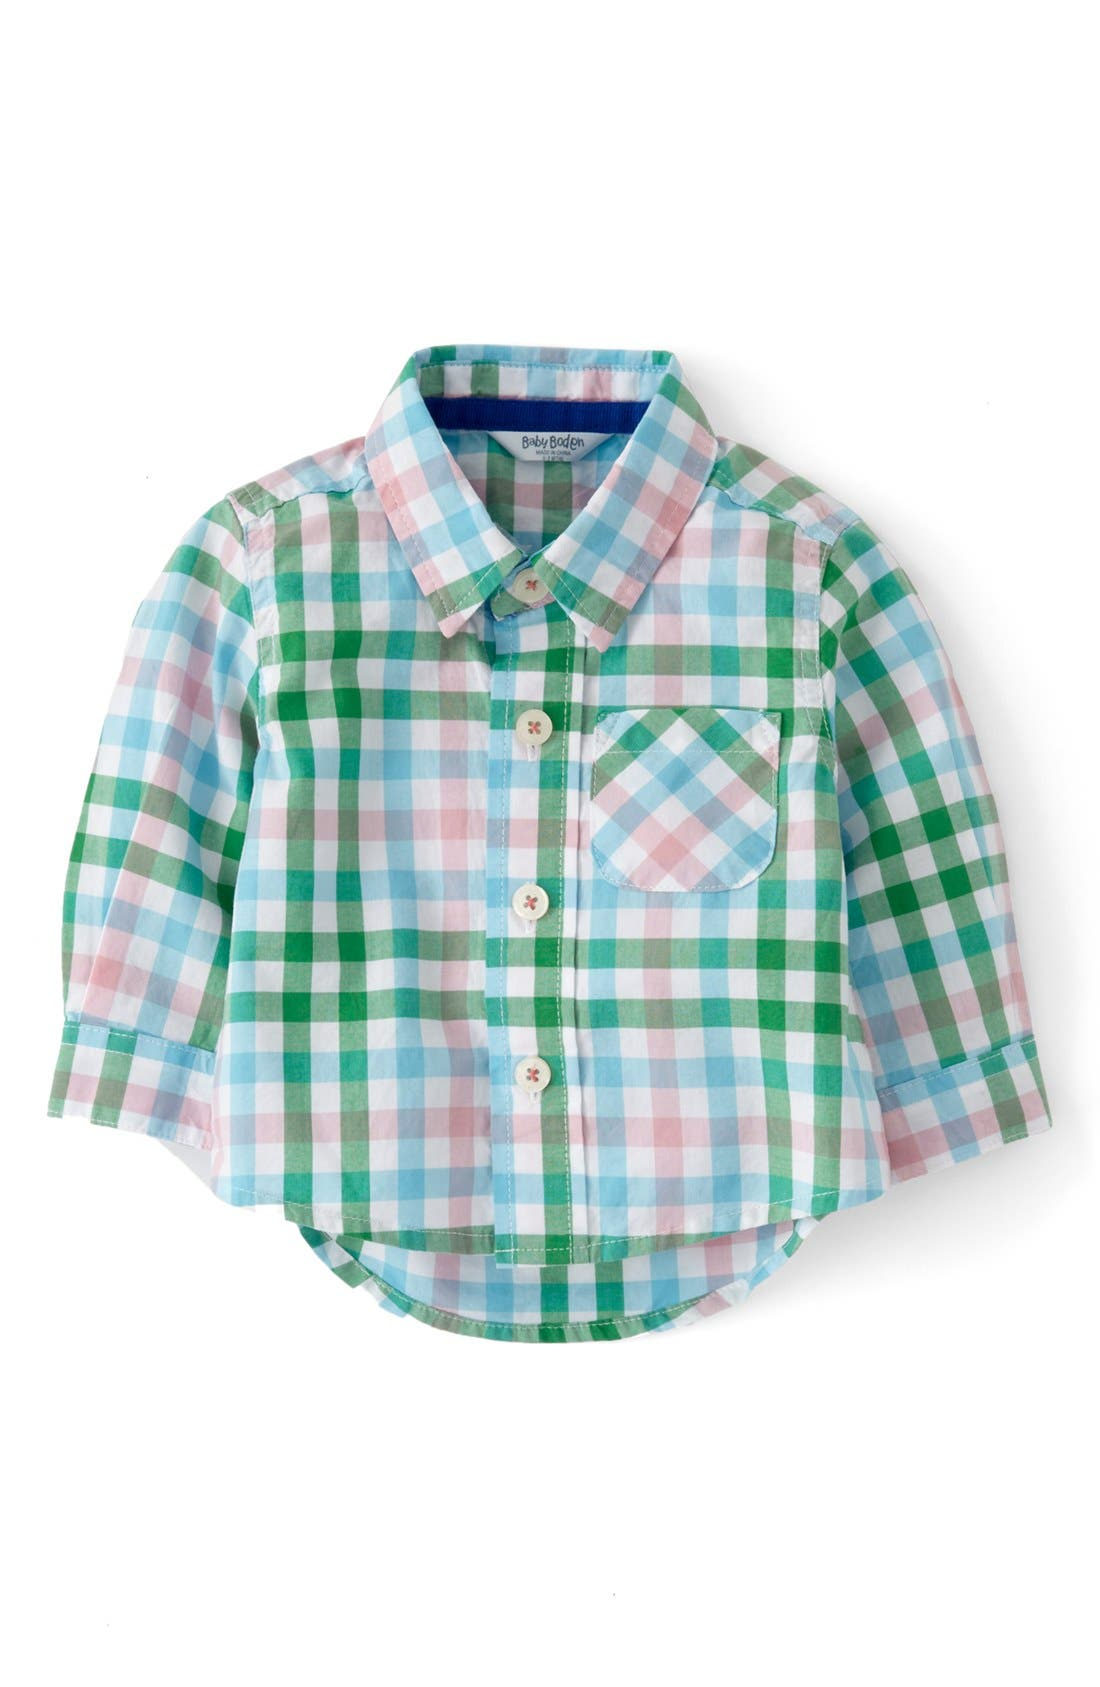 Main Image - Mini Boden 'Laundered' Woven Shirt (Baby Boys)